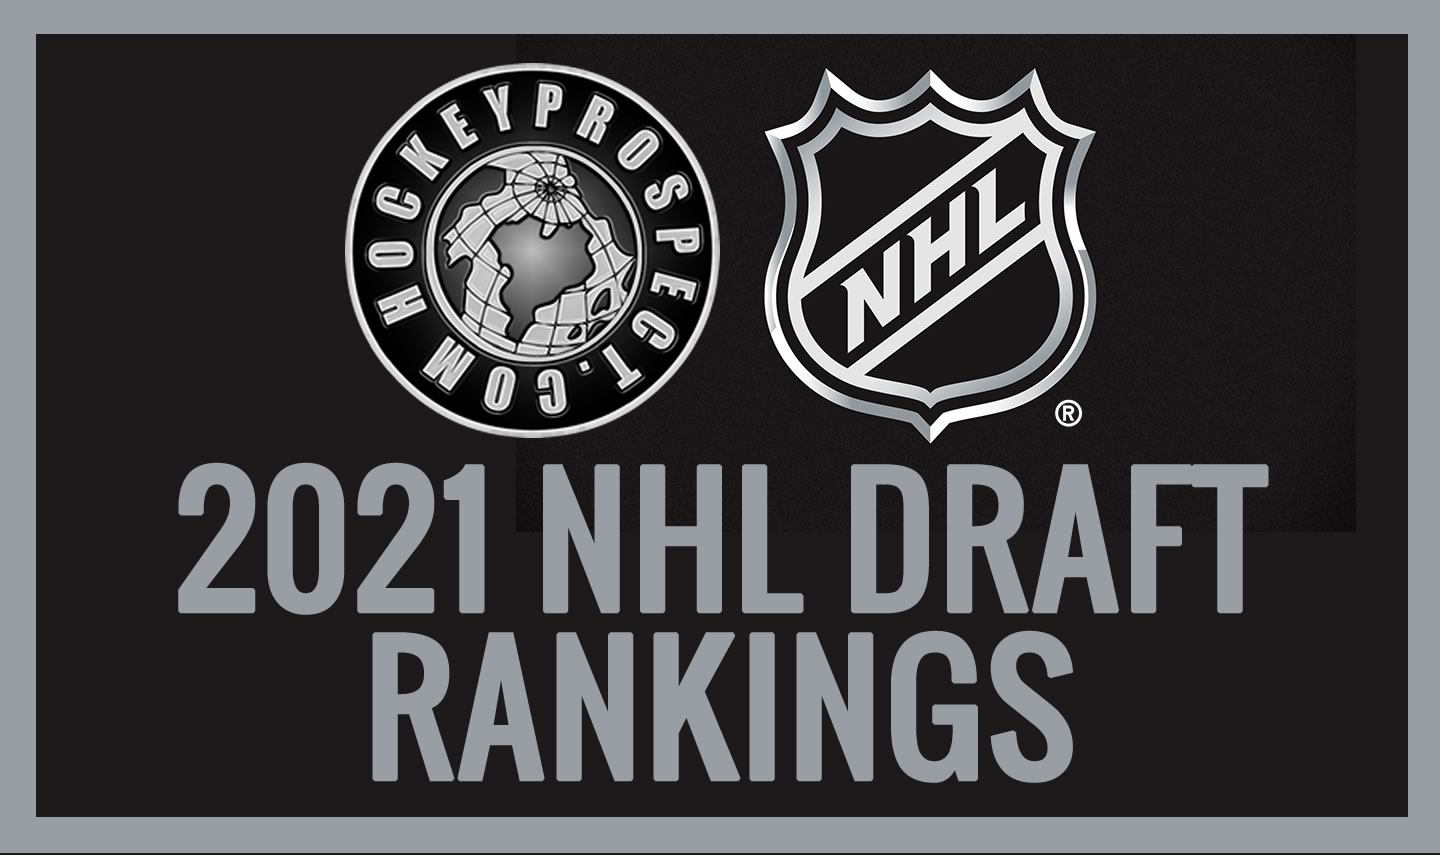 2021 NHL Draft Rankings